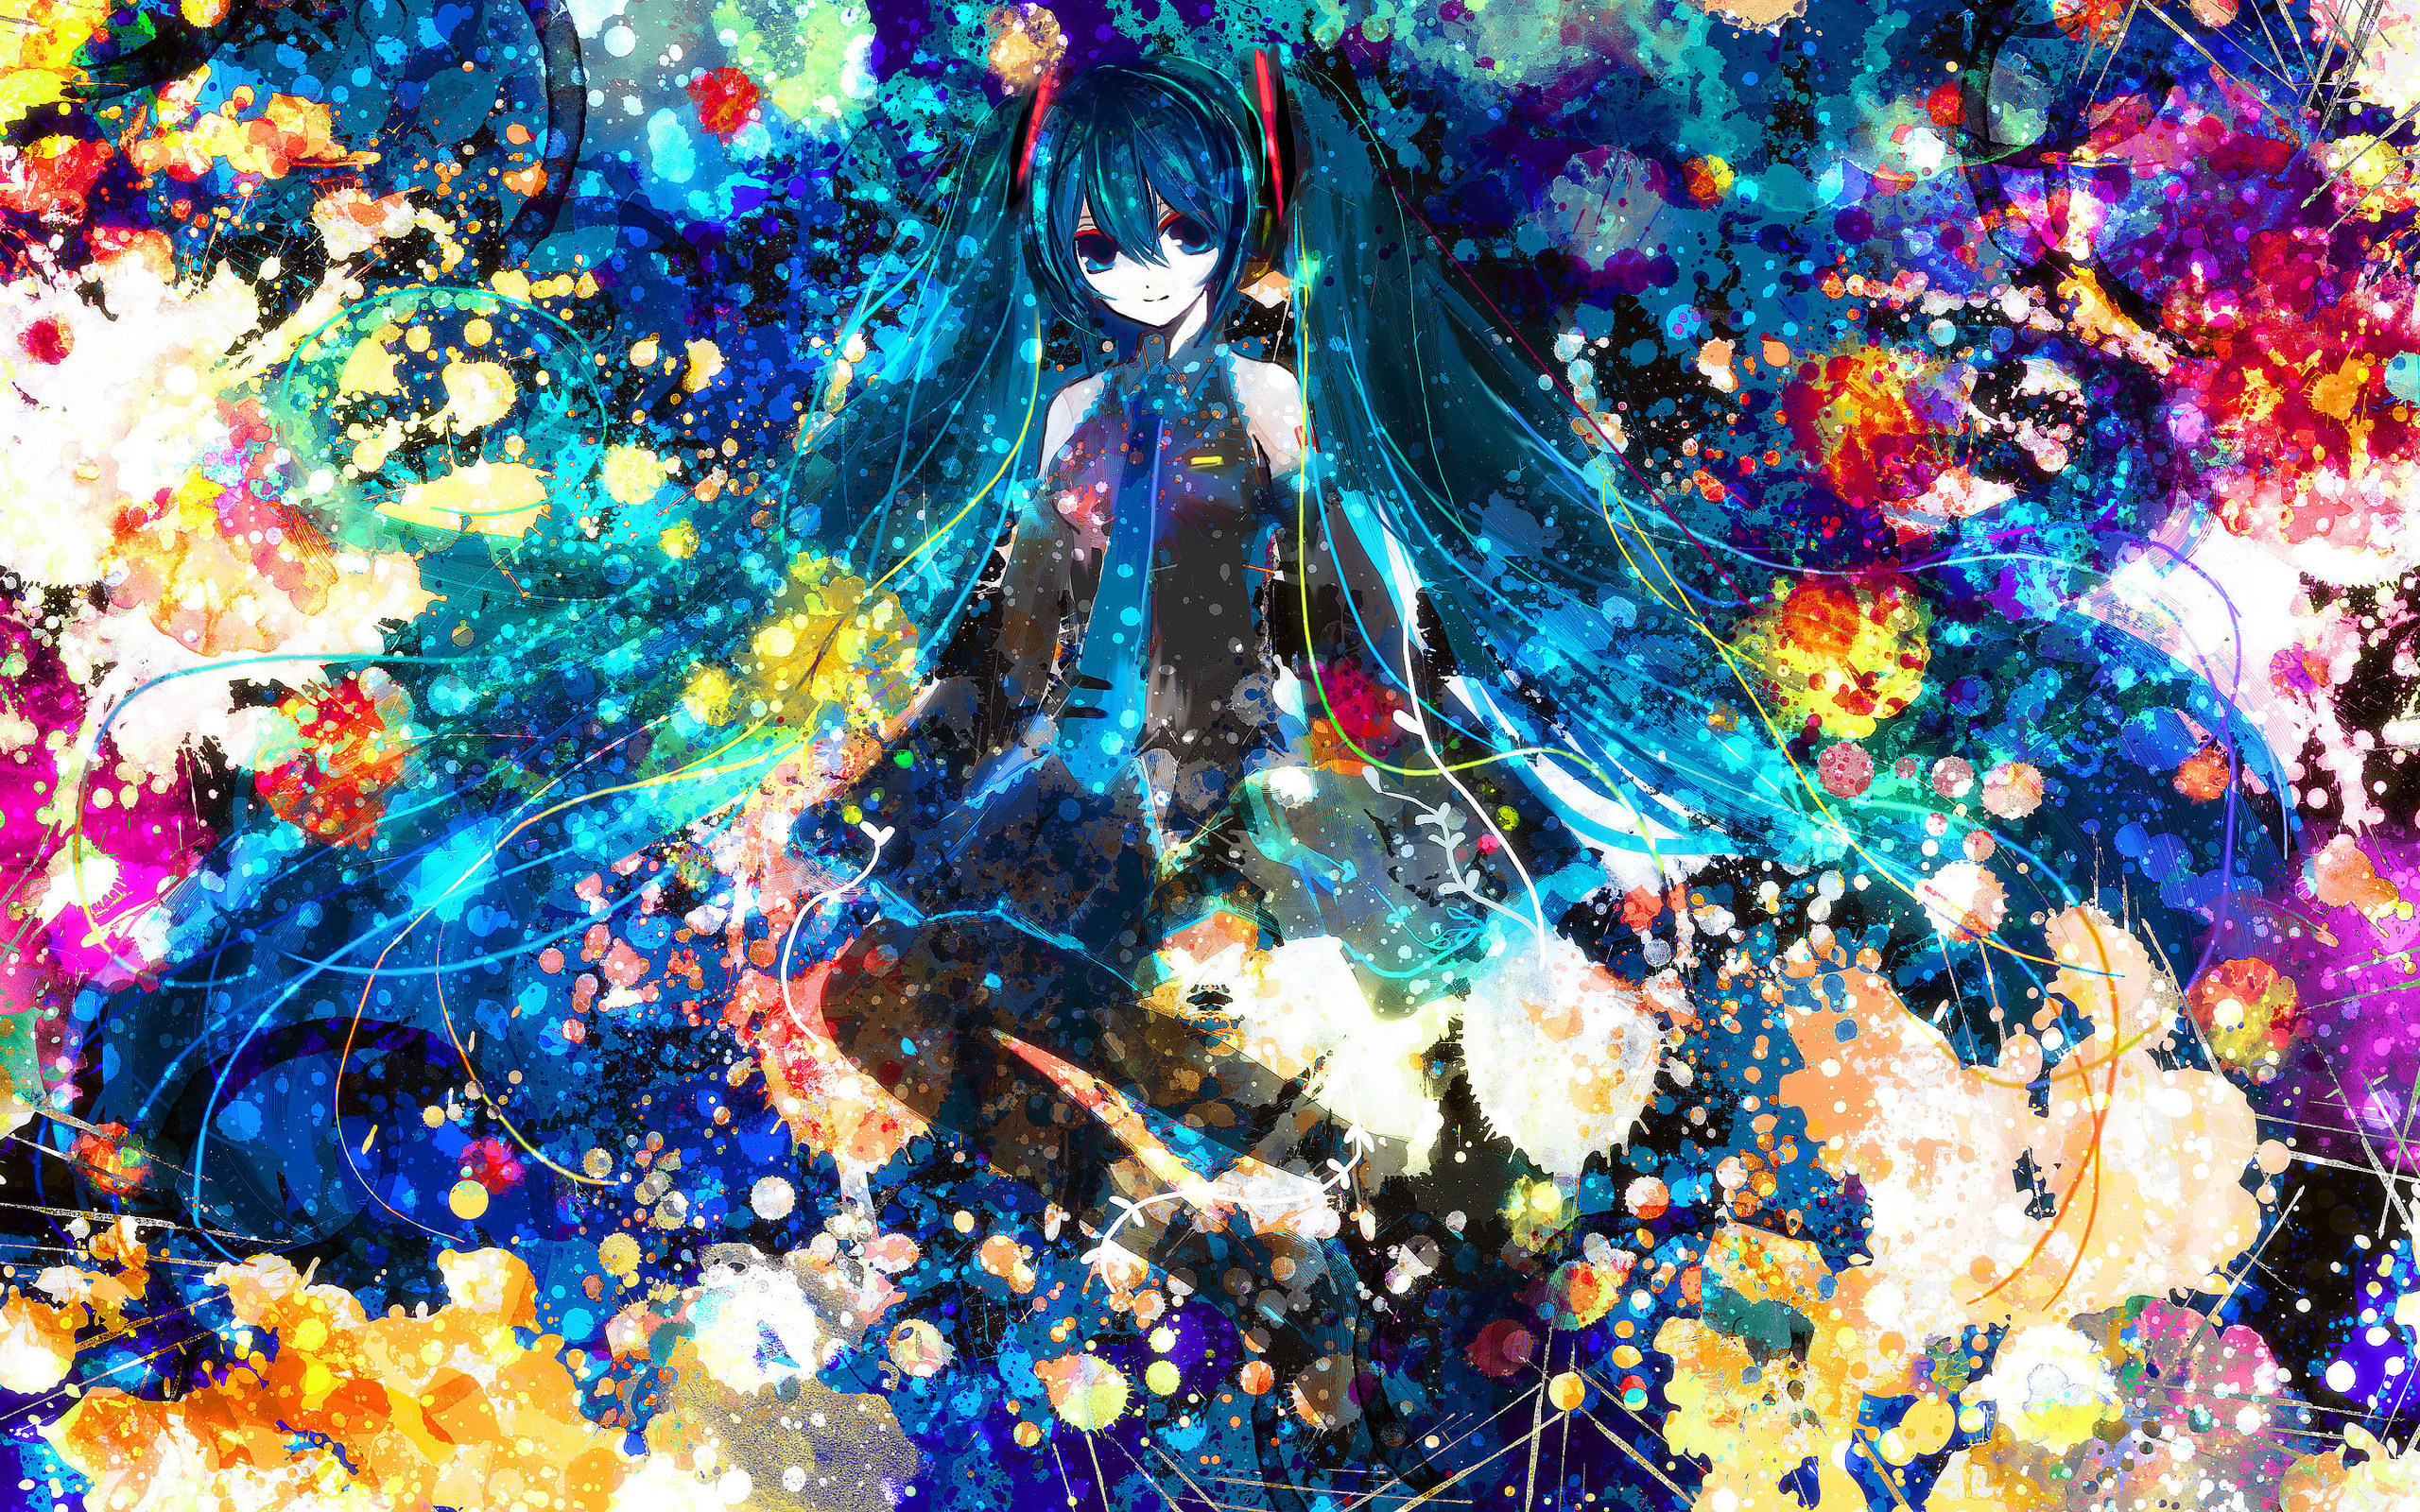 Jackson Pollock Iphone Wallpaper Vocaloid Hd Wallpaper Background Image 2560x1600 Id